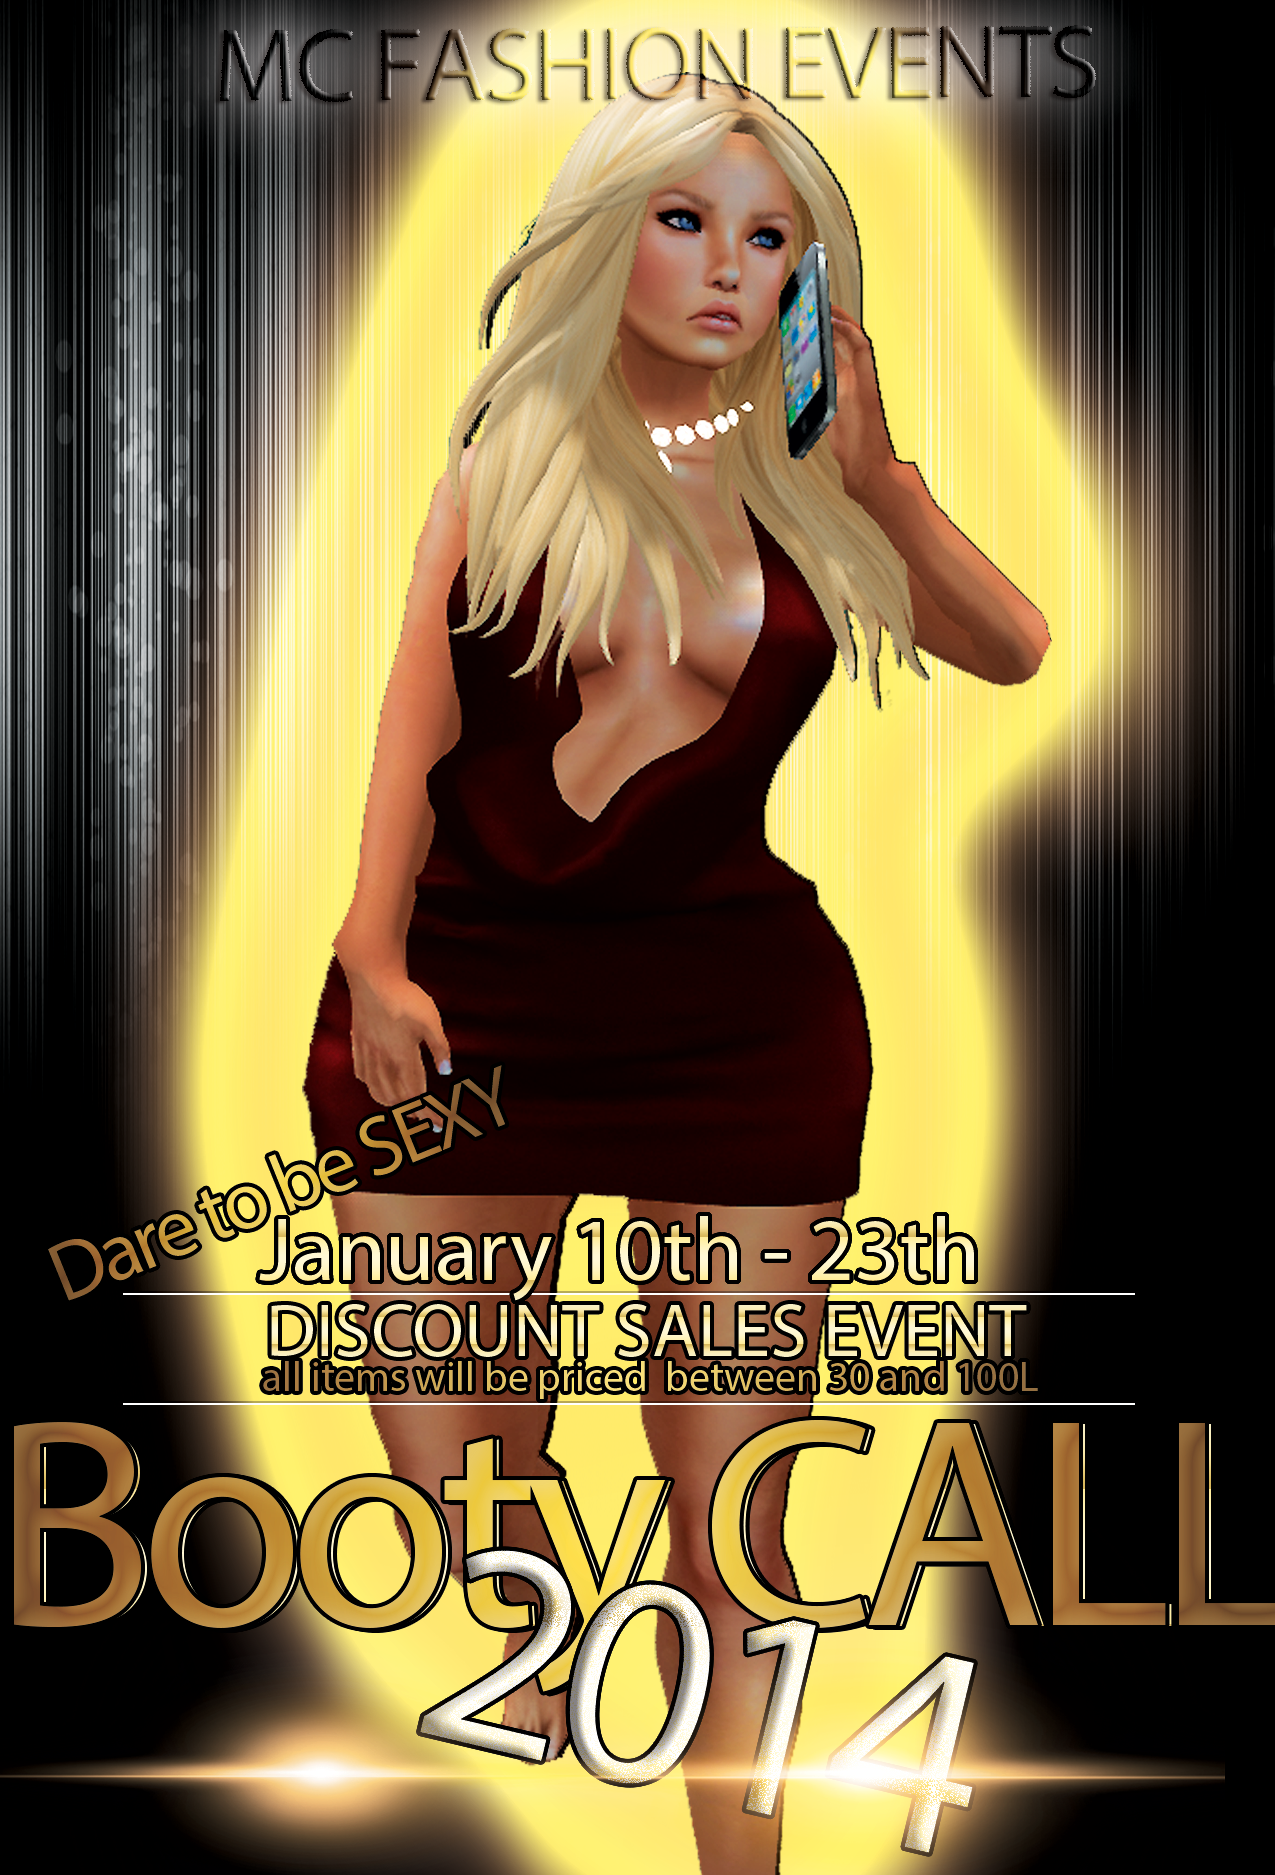 """MC FASHION EVENTS - BOOTY CALL ( Sexy Items ) We would like you to join our new event. """"MC Fashion Events"""" will run every two weeks ,starting with 10'th January .Each event will have a different theme and the designers will delight you with items matching the theme .These are discount sales events ,all items will be priced a between 30 and 100L."""